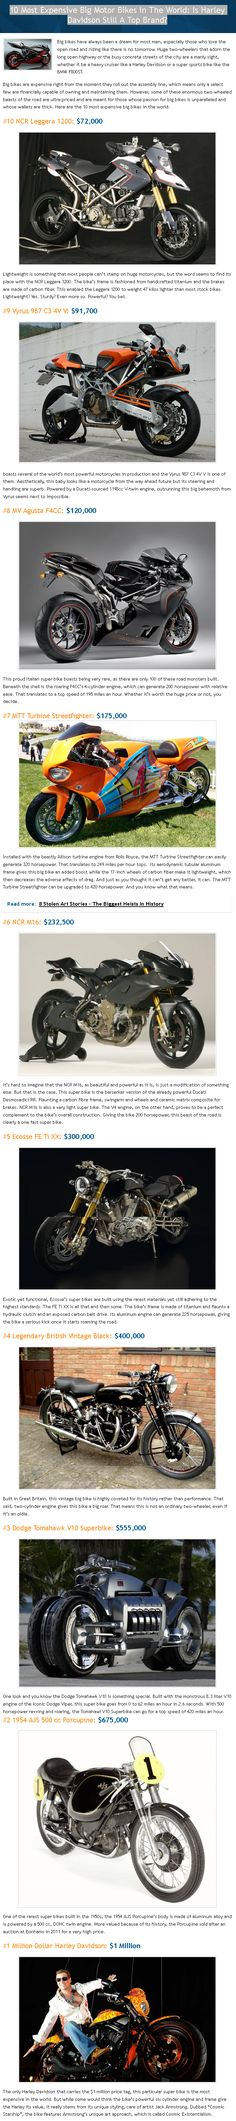 Speaking of #Bikes. 10 Most #Expensive Big Motor Bikes In The World: Is Harley Davidson Still A Top Brand? #Performance #HarleyDavidson #Museum #HarleyDavidsonBike #Bike #motorcycle #biker